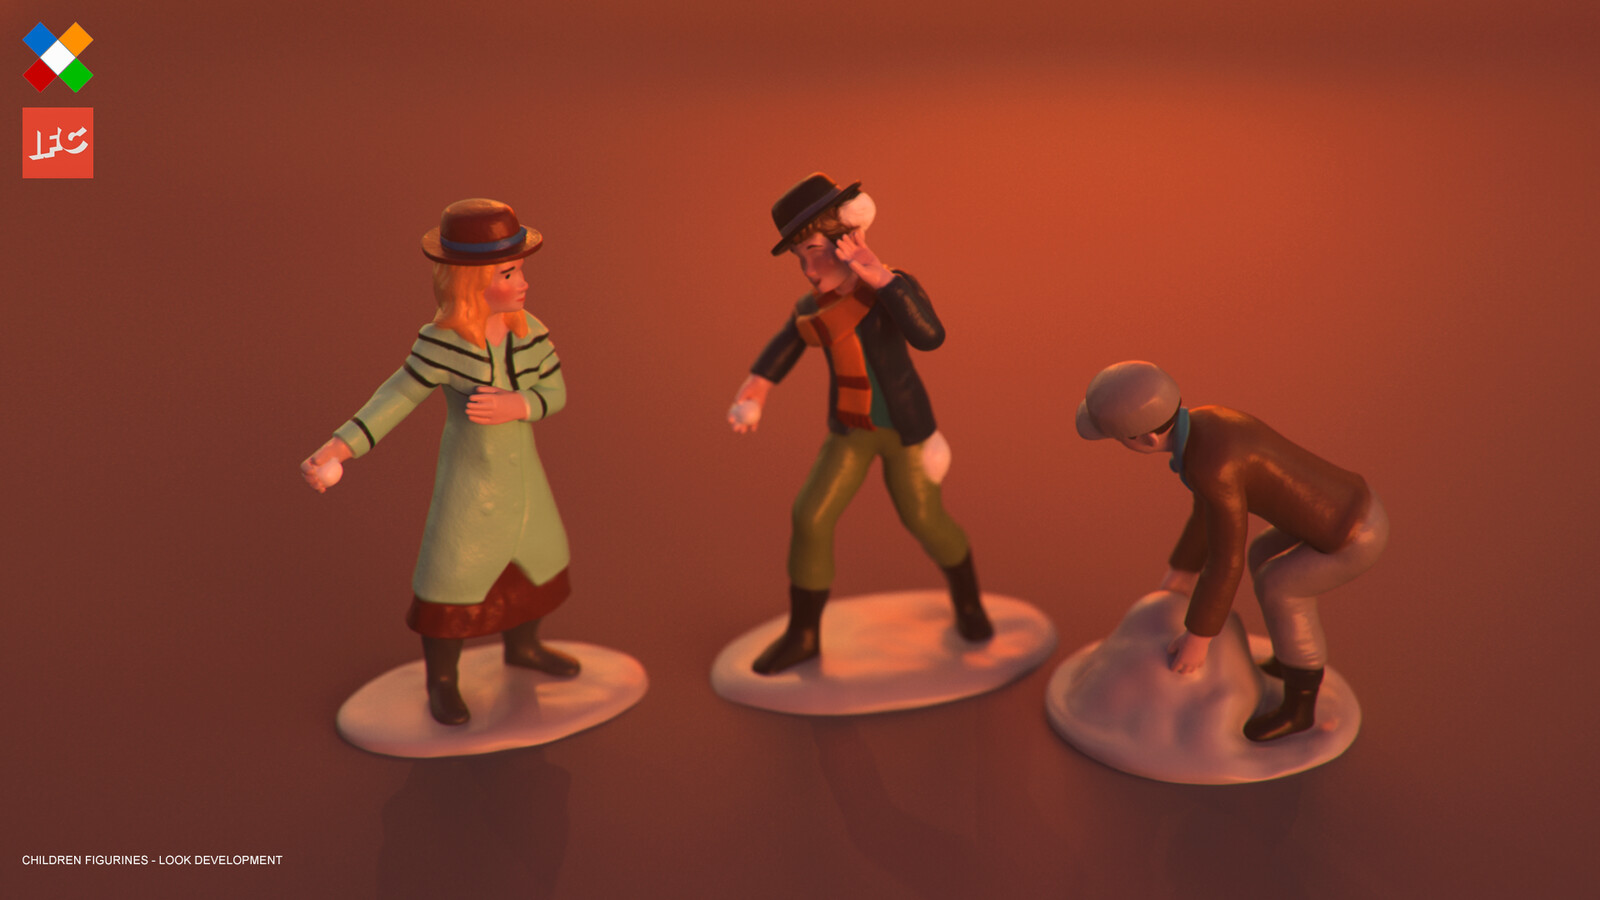 Look Development done for the Children Figurines